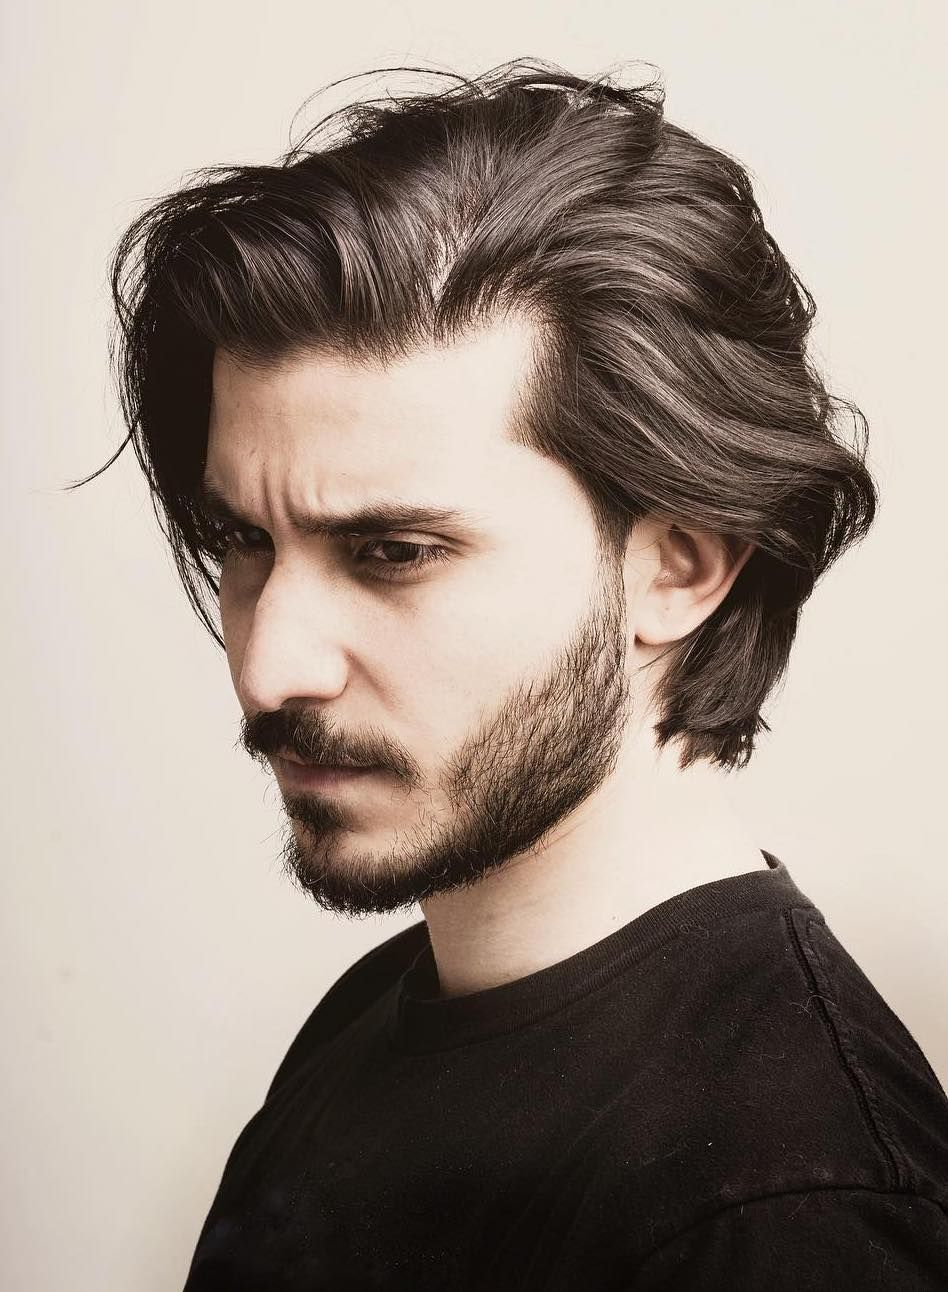 Handsome And Cool The Latest Men S Hairstyles For 2019 Long Hair Styles Men Mens Hairstyles Medium Latest Men Hairstyles